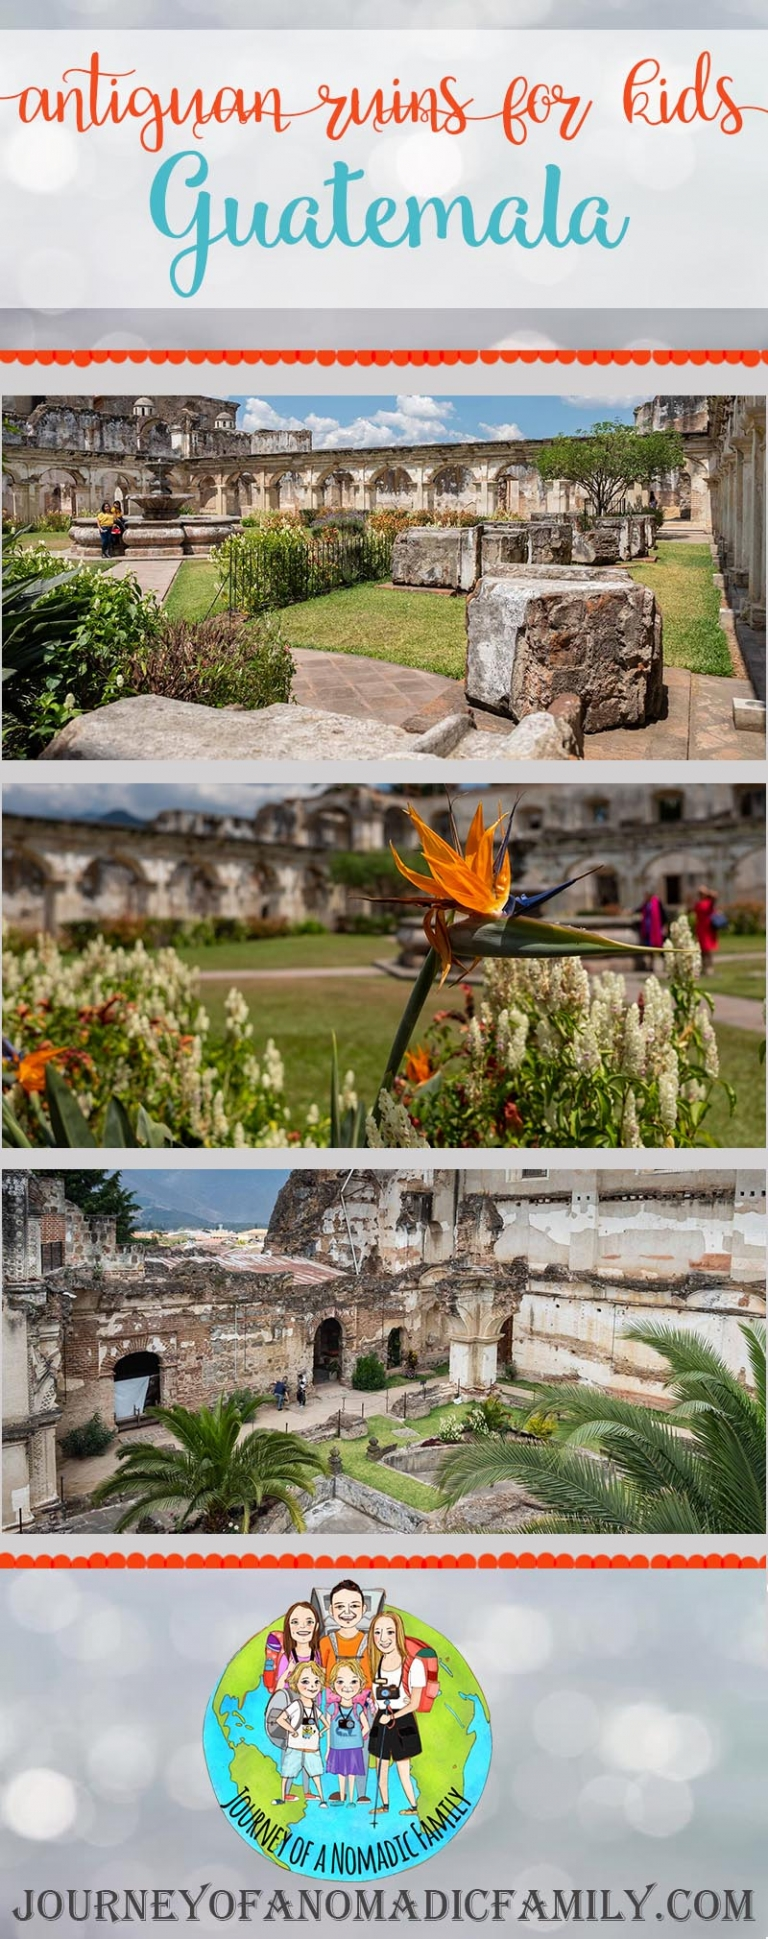 Antigua for kids: 3 glorious ruins that are GREAT for kids to explore.